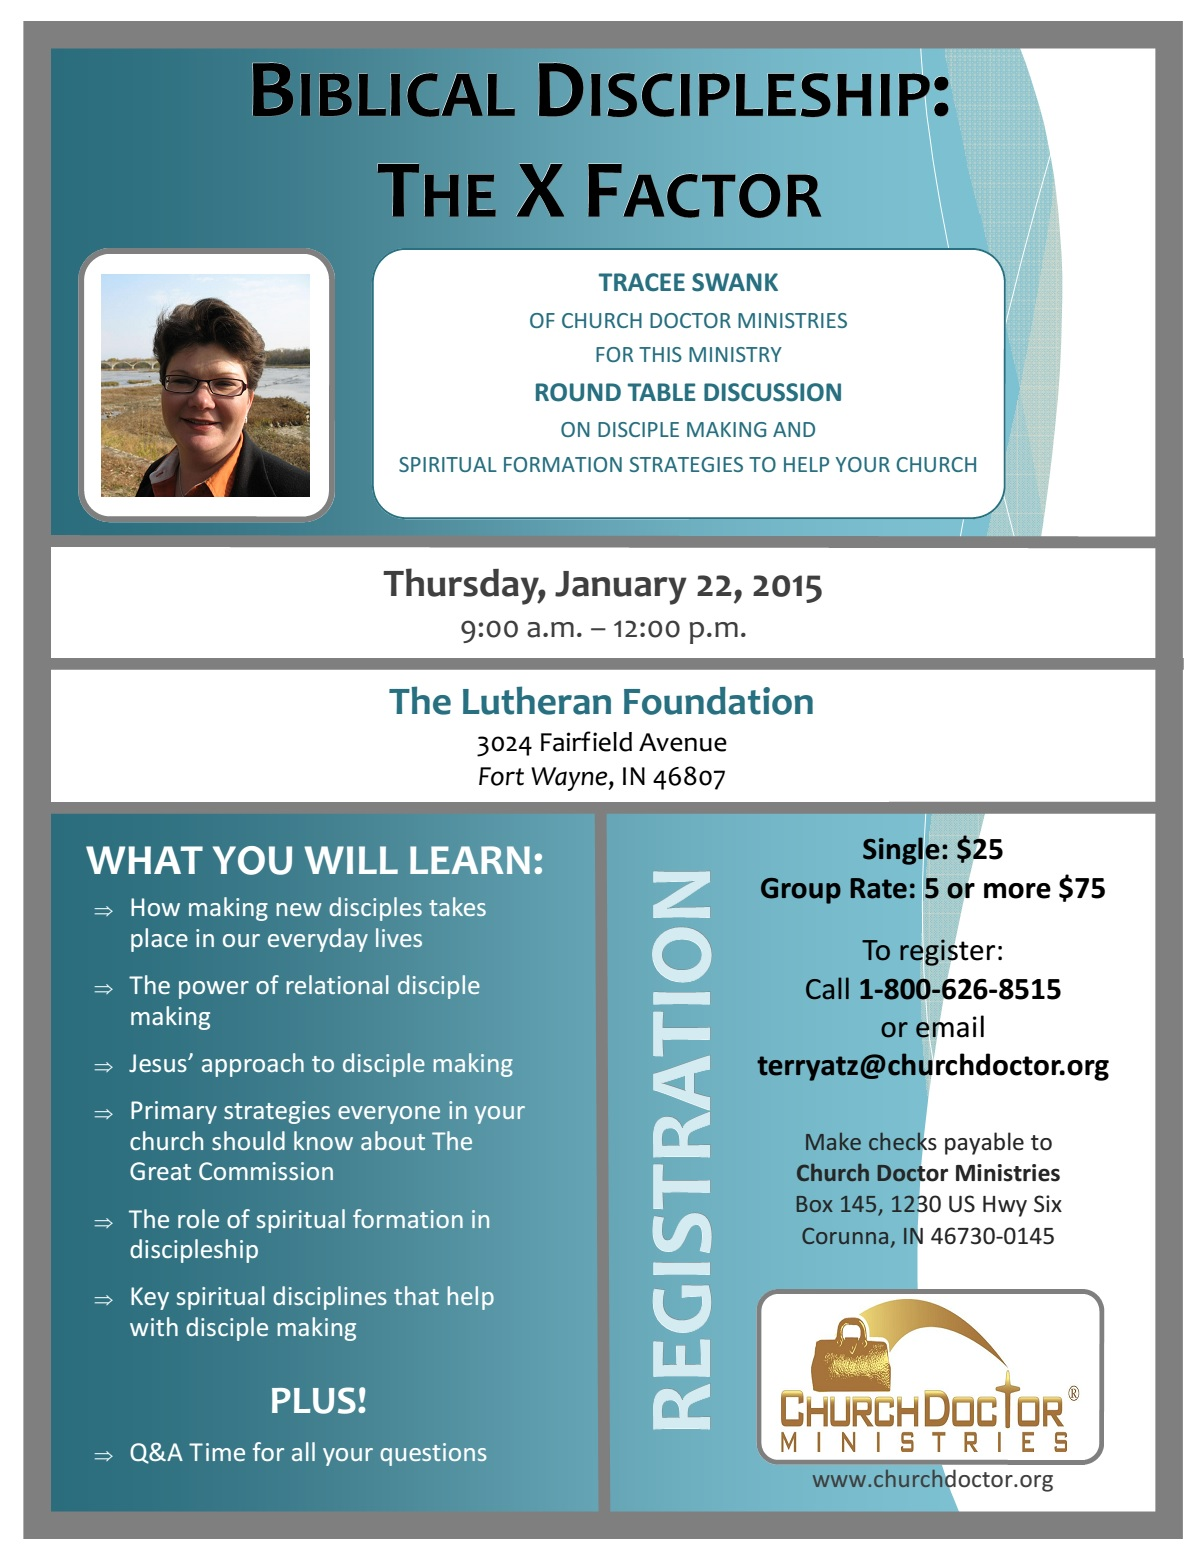 Biblical Discipleship: The X Factor – January 22 in Fort Wayne, IN